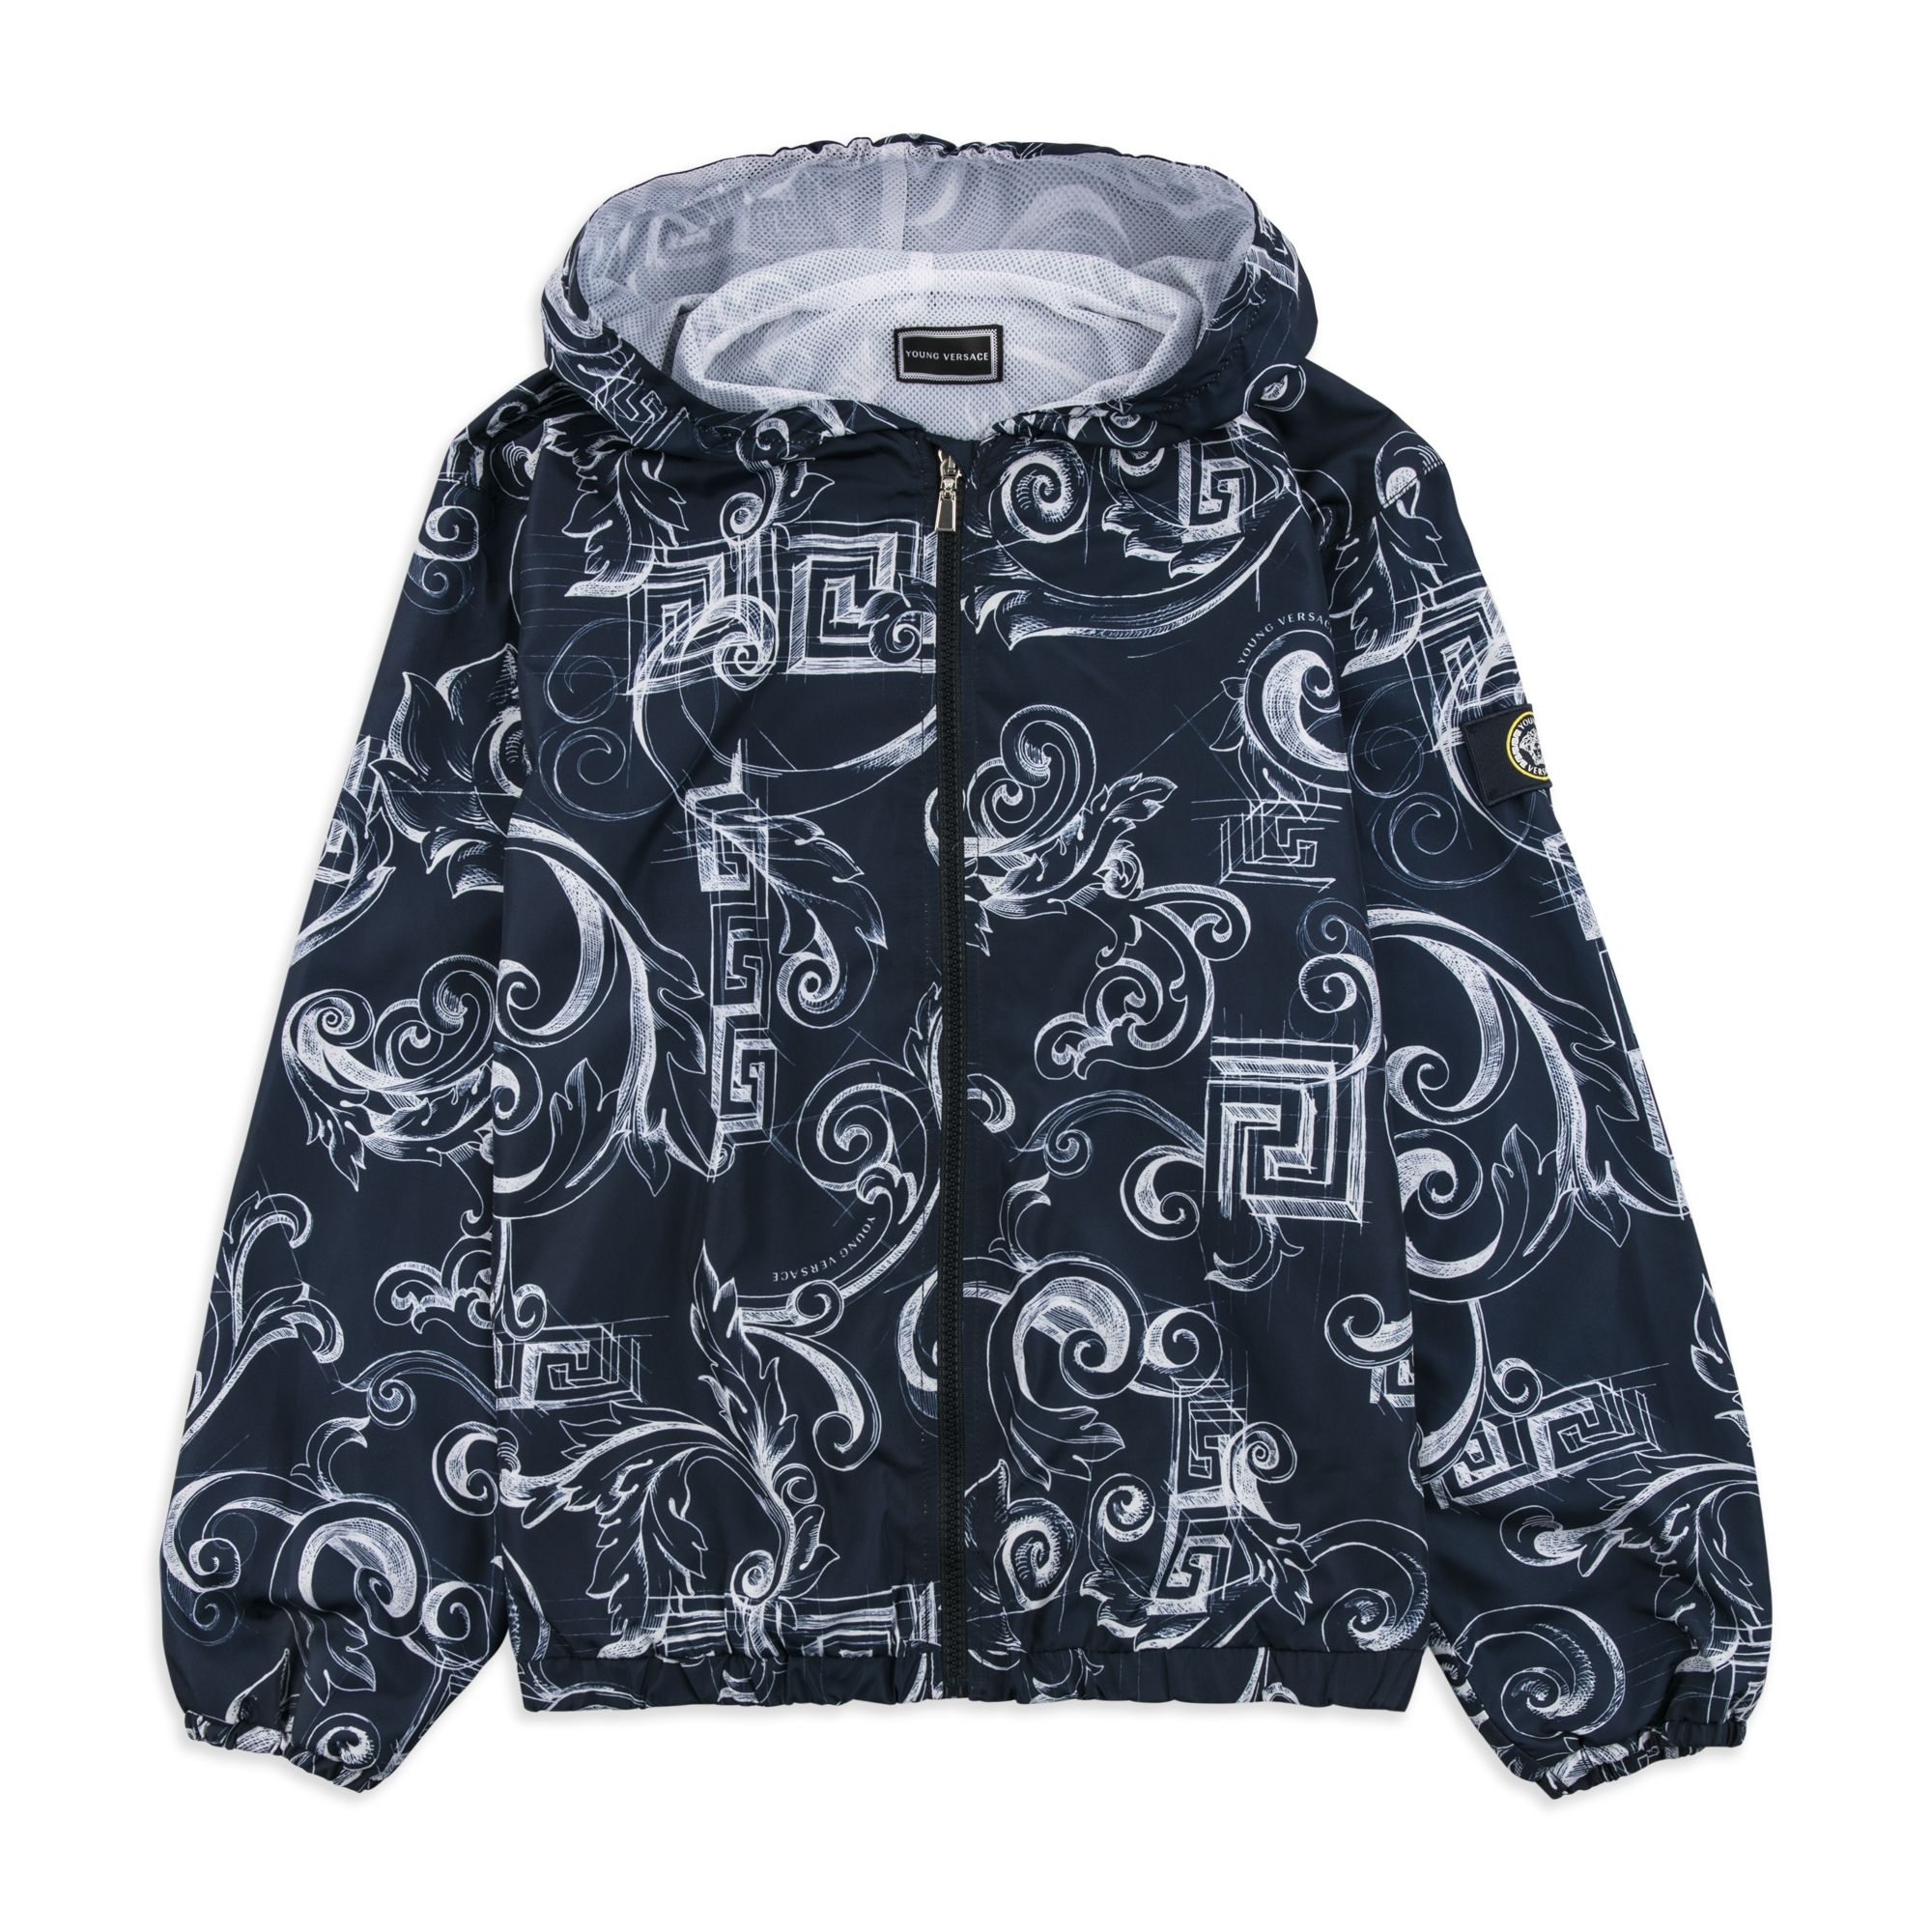 8eb95600872e YOUNG VERSACE Boys Baroque Rain Jacket - Navy Boys hooded jacket •  Lightweight woven fabric • Water-repellent • Mesh lining • Full zip  fastening ...